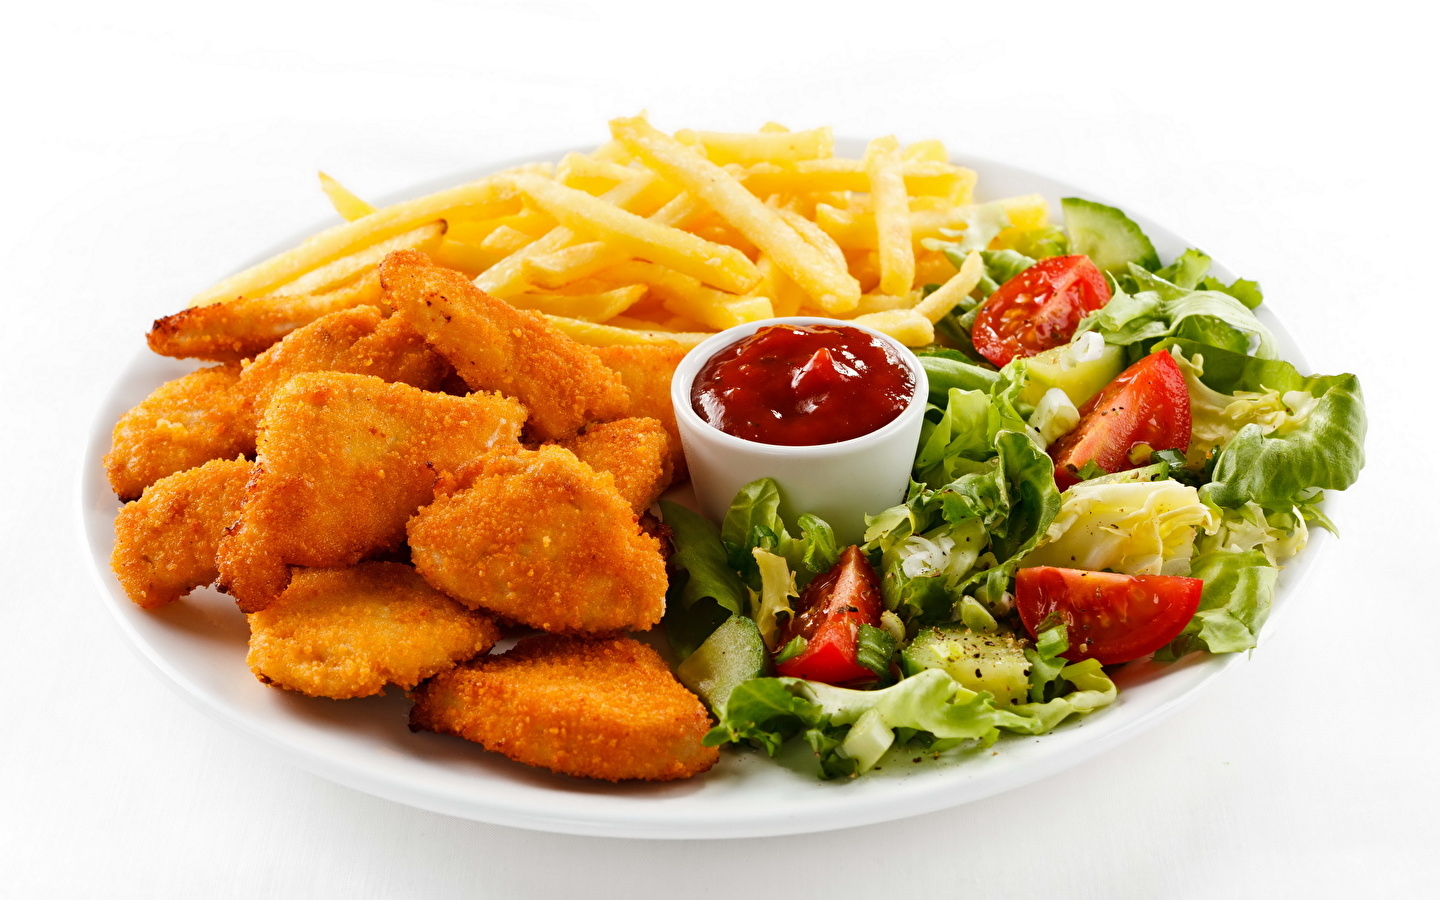 Images Nuggets French fries Ketchup Fast food Food 1440x900 1440x900